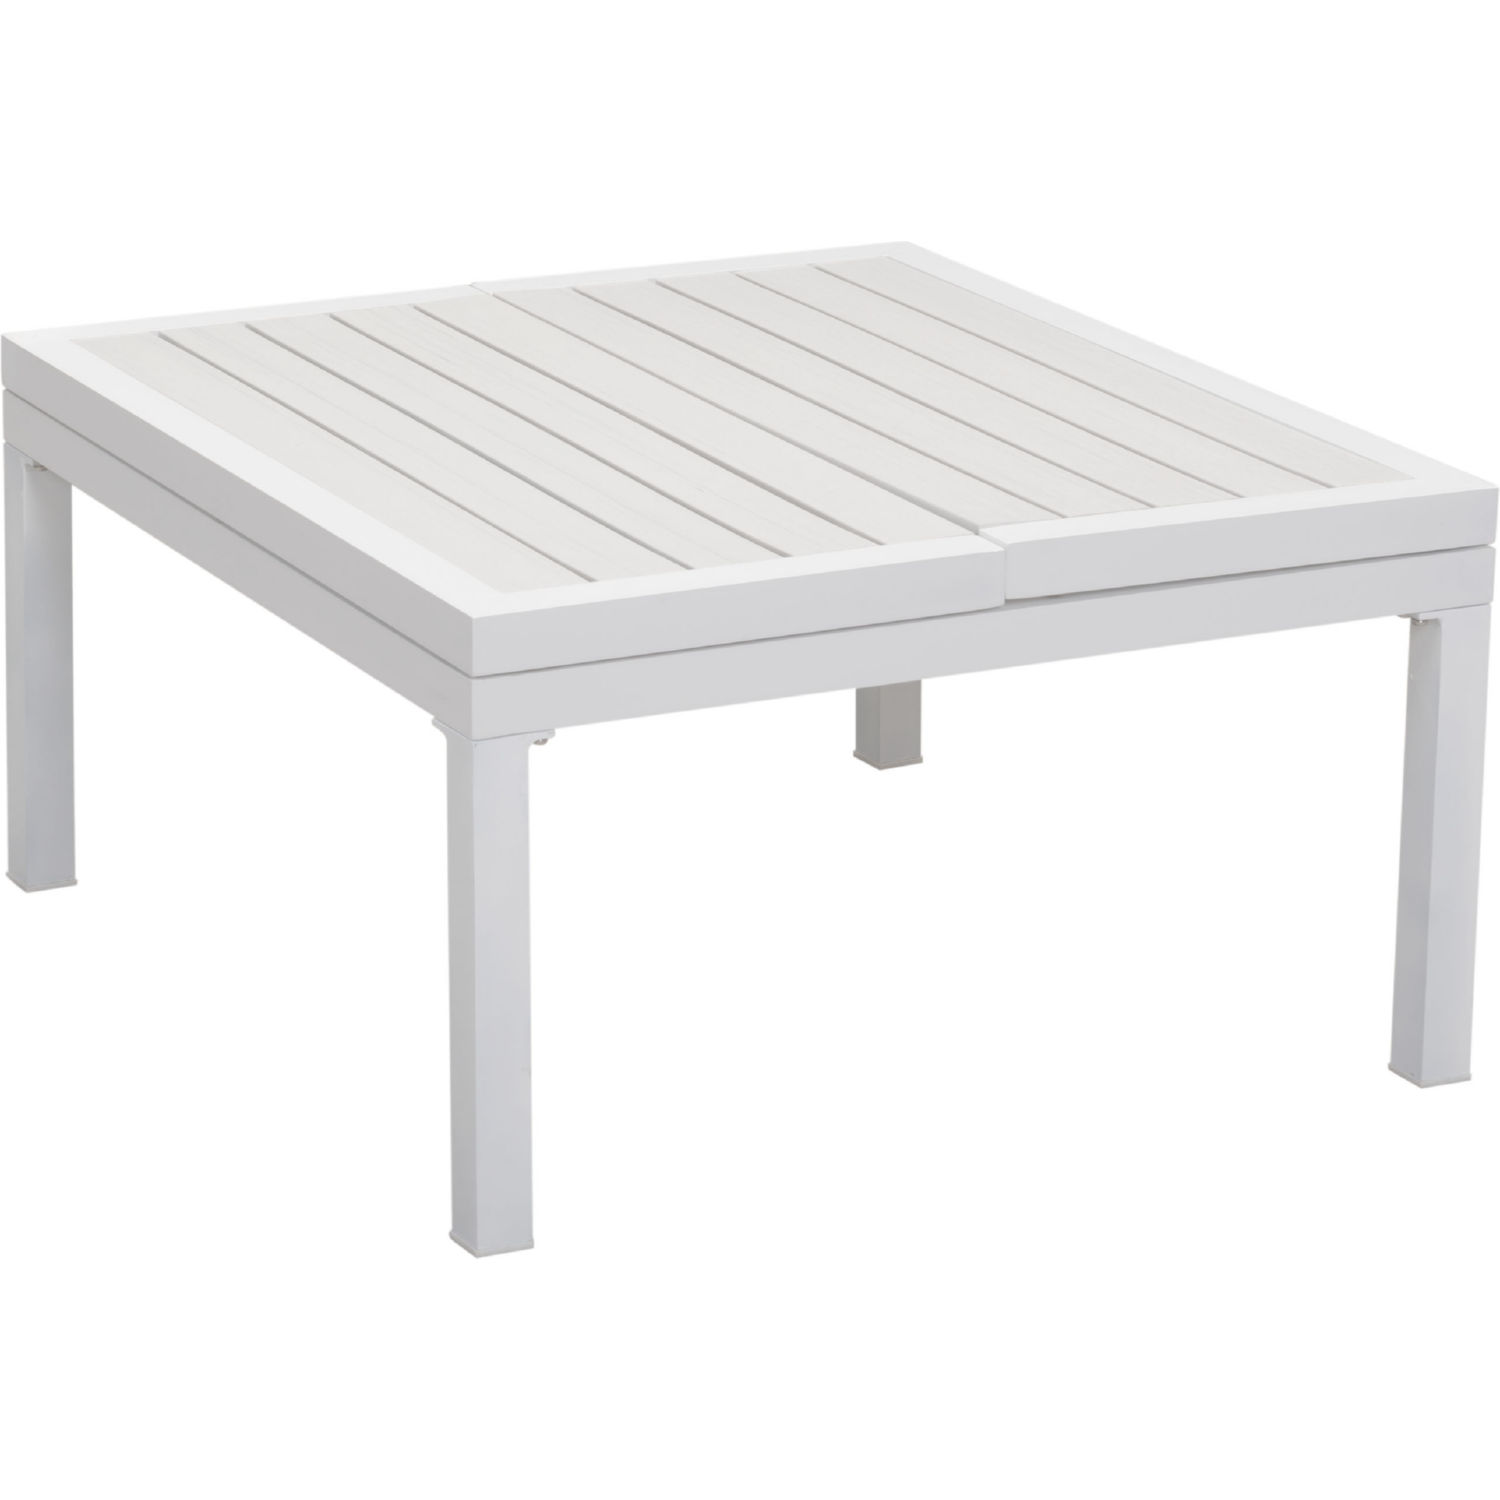 Santorini Outdoor Lift Top Coffee Table In White Polywood Metal By Zuo